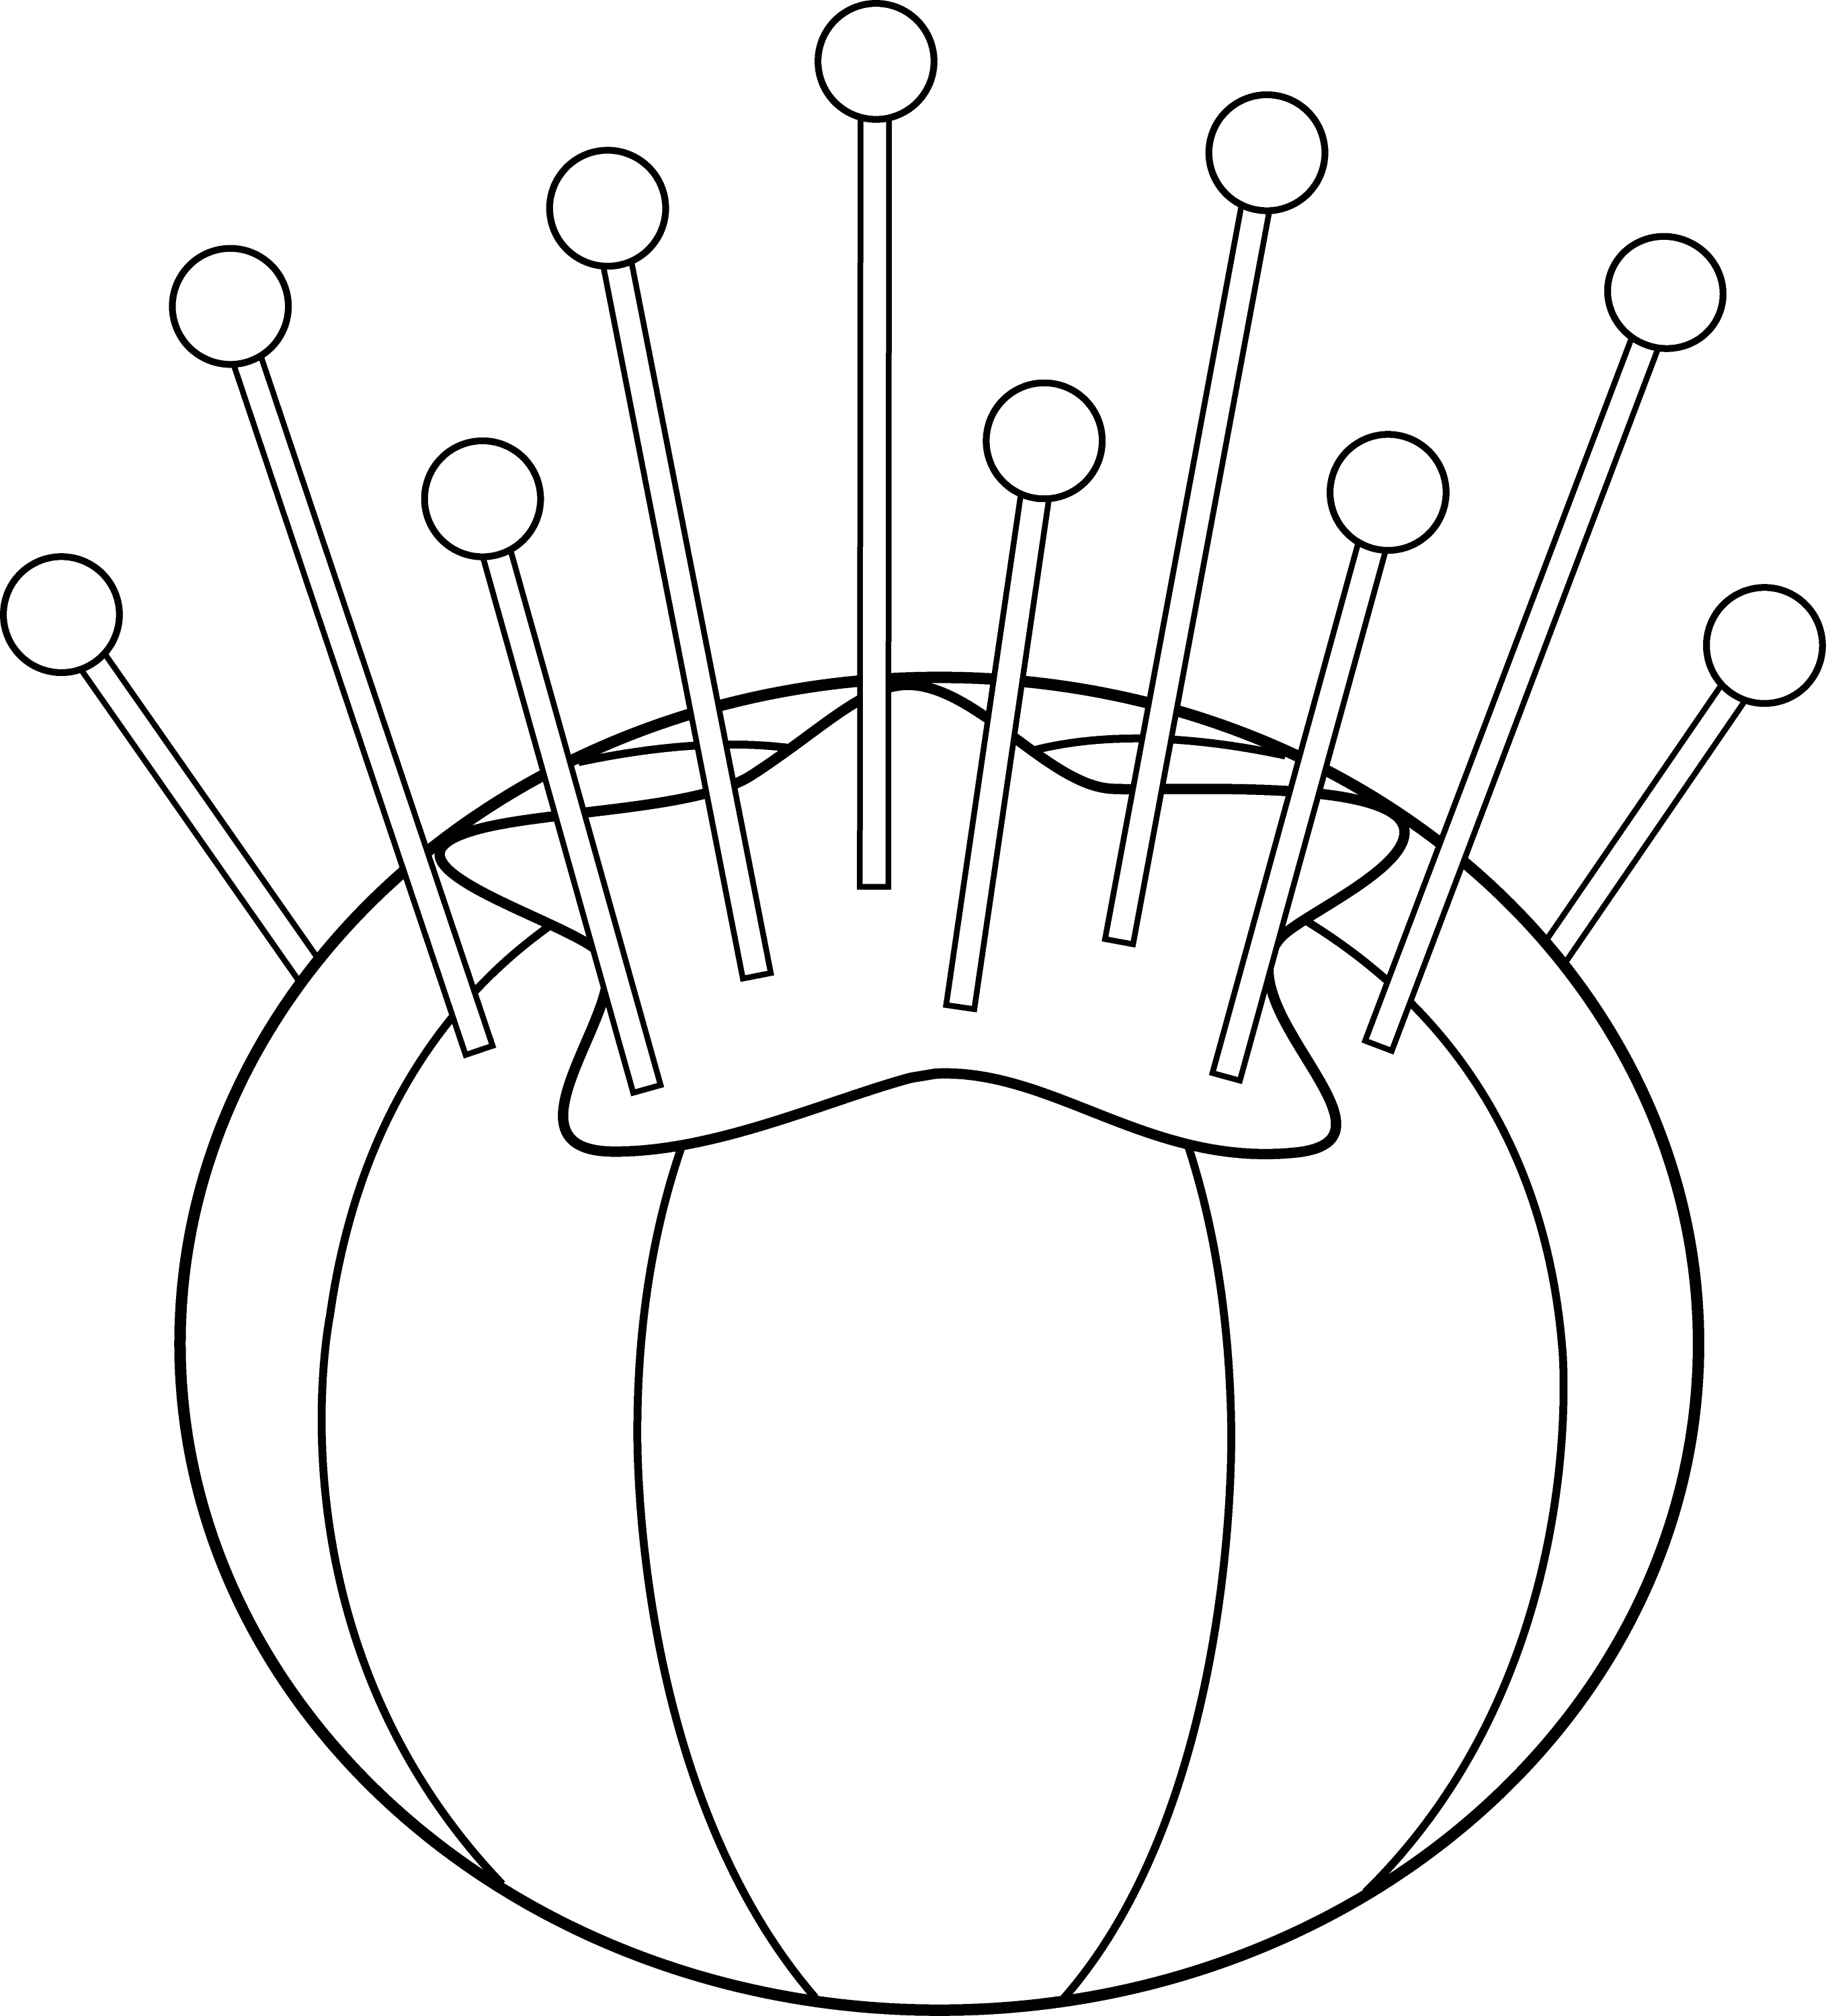 Pin Cushion Outline